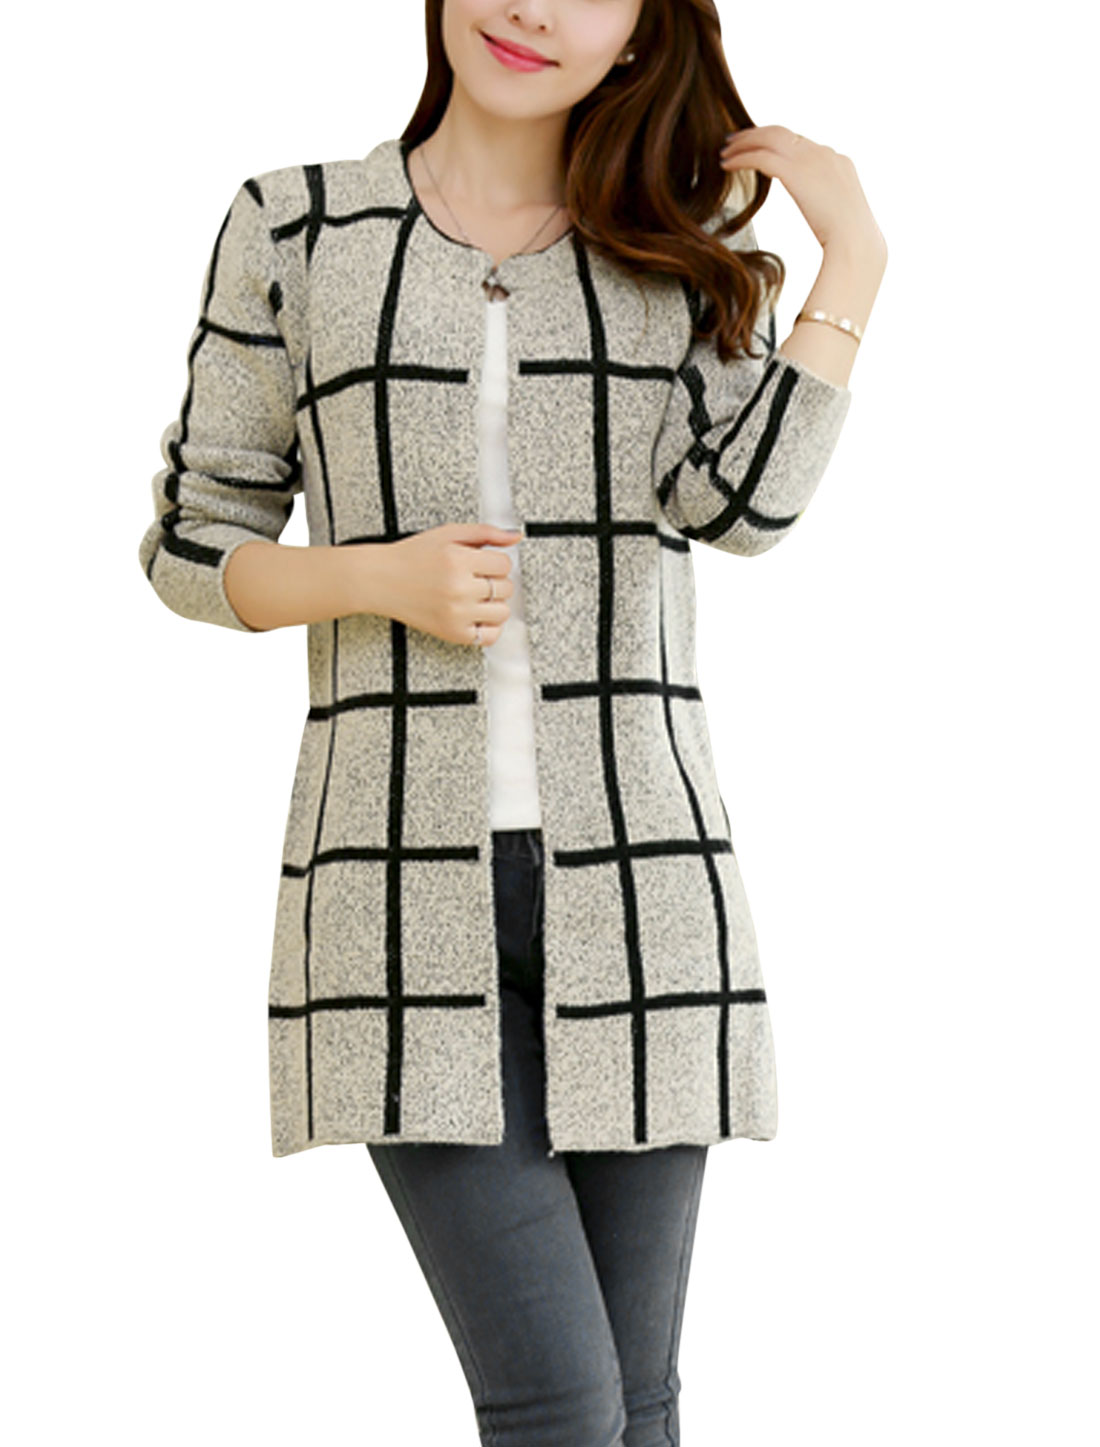 Women Pockets Side Checks Open Front Fashion Autumn Cardigan Light Gray S